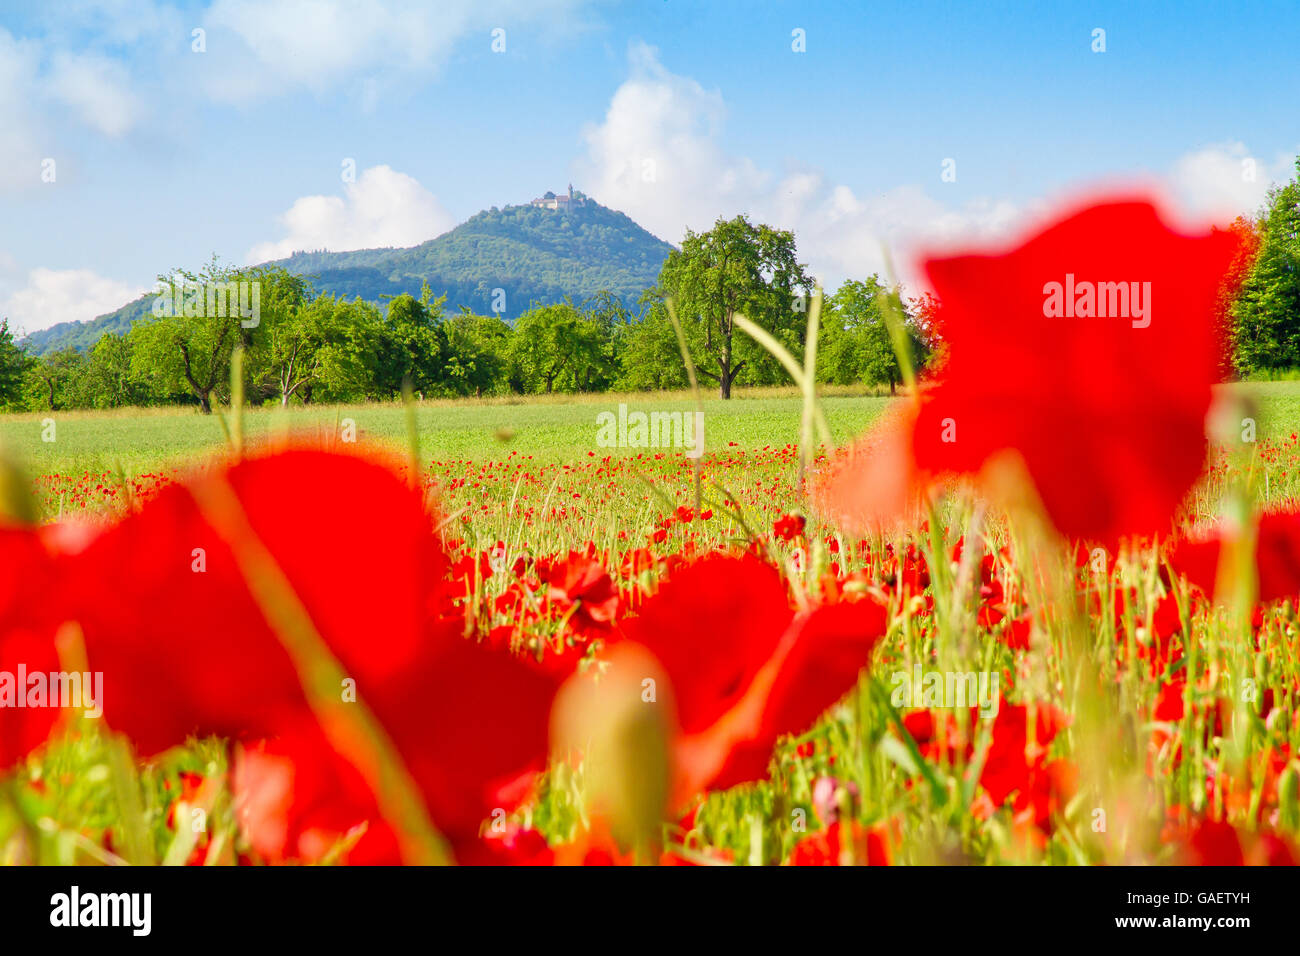 Field with red poppies, in background the castle Burg Teck, schwaebische Alb, Germany - Stock Image